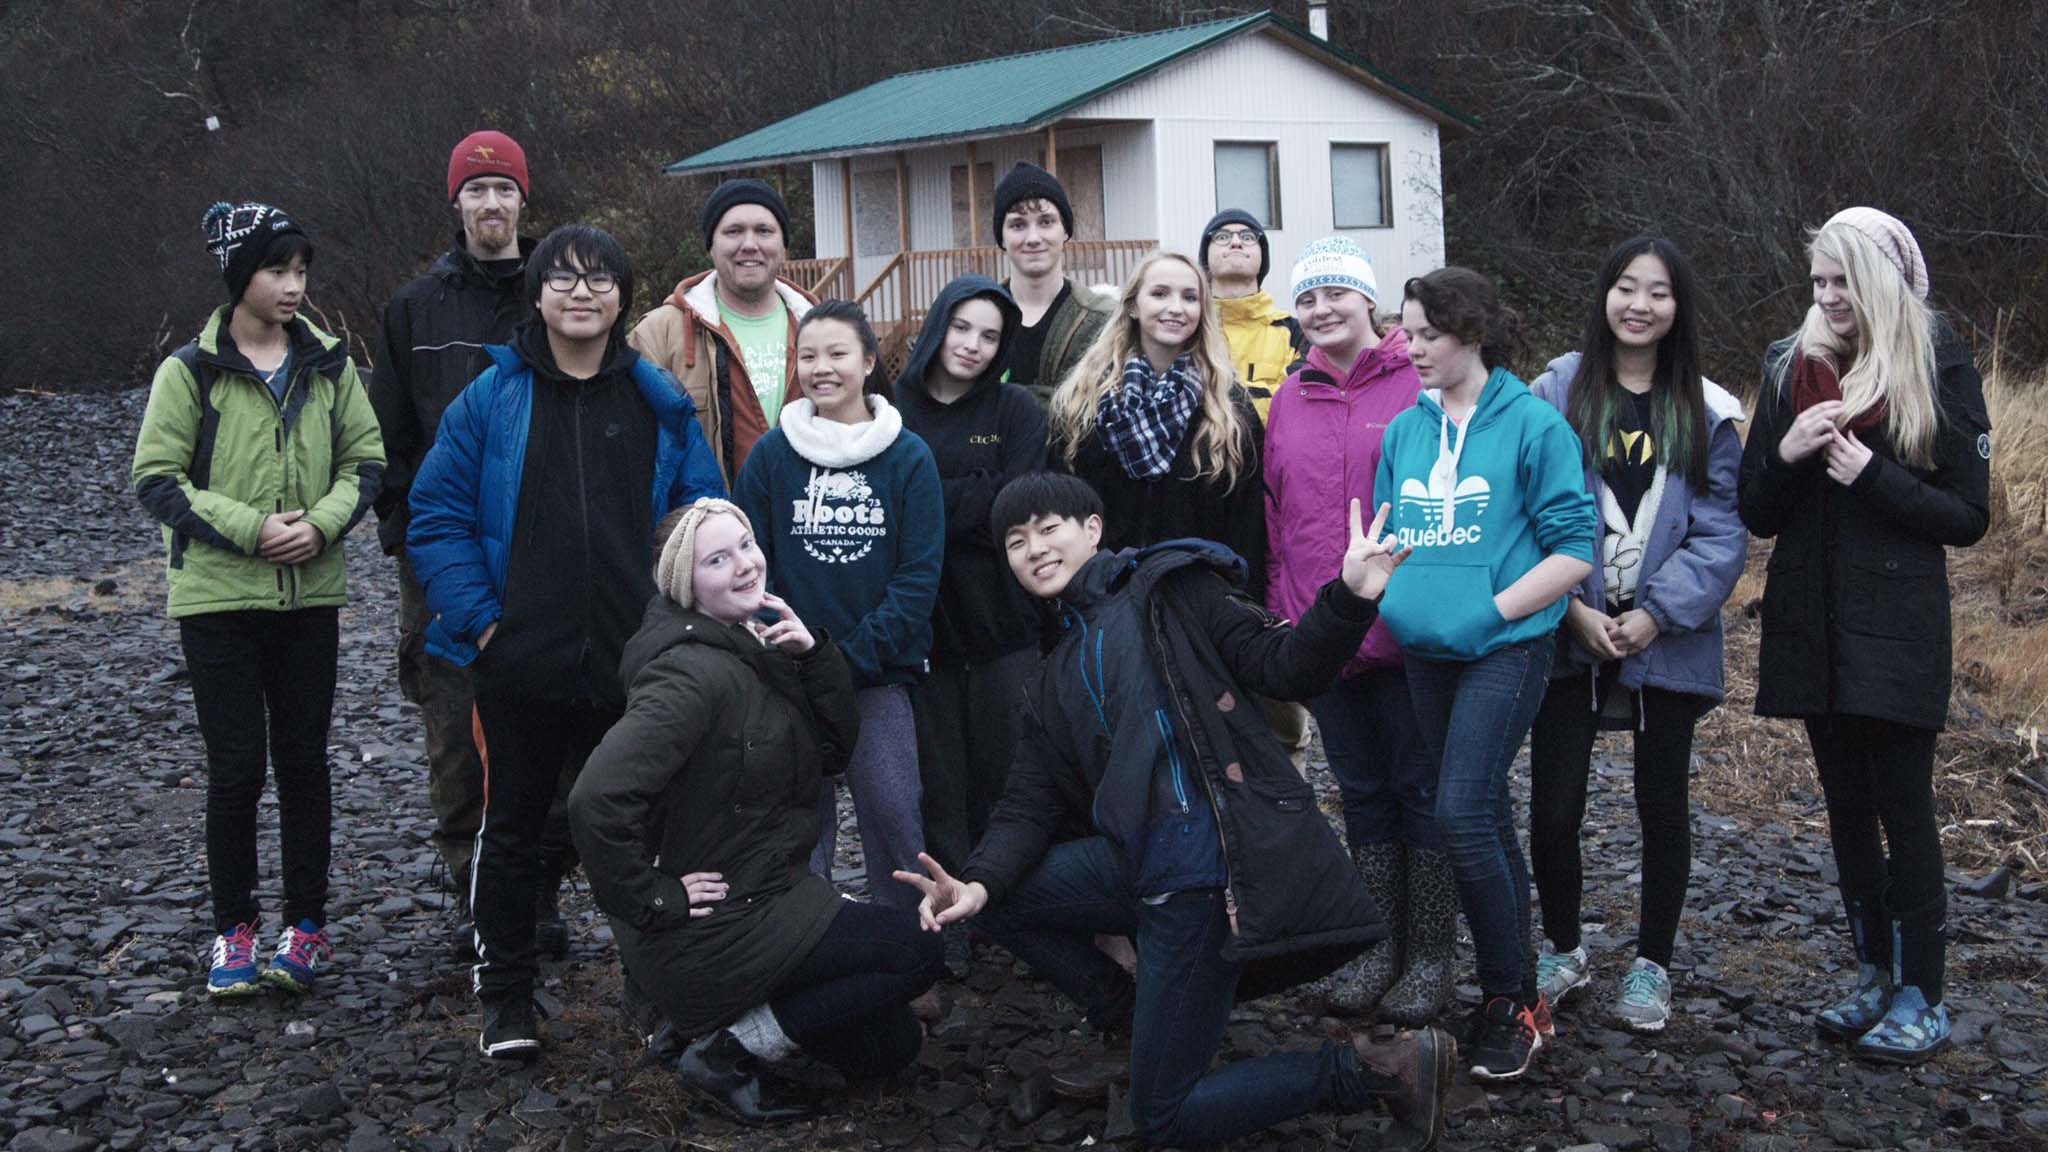 Youth from Truro Alliance Church raised money for refugee sponsorship by spending a weekend without internet, electricity, and running water